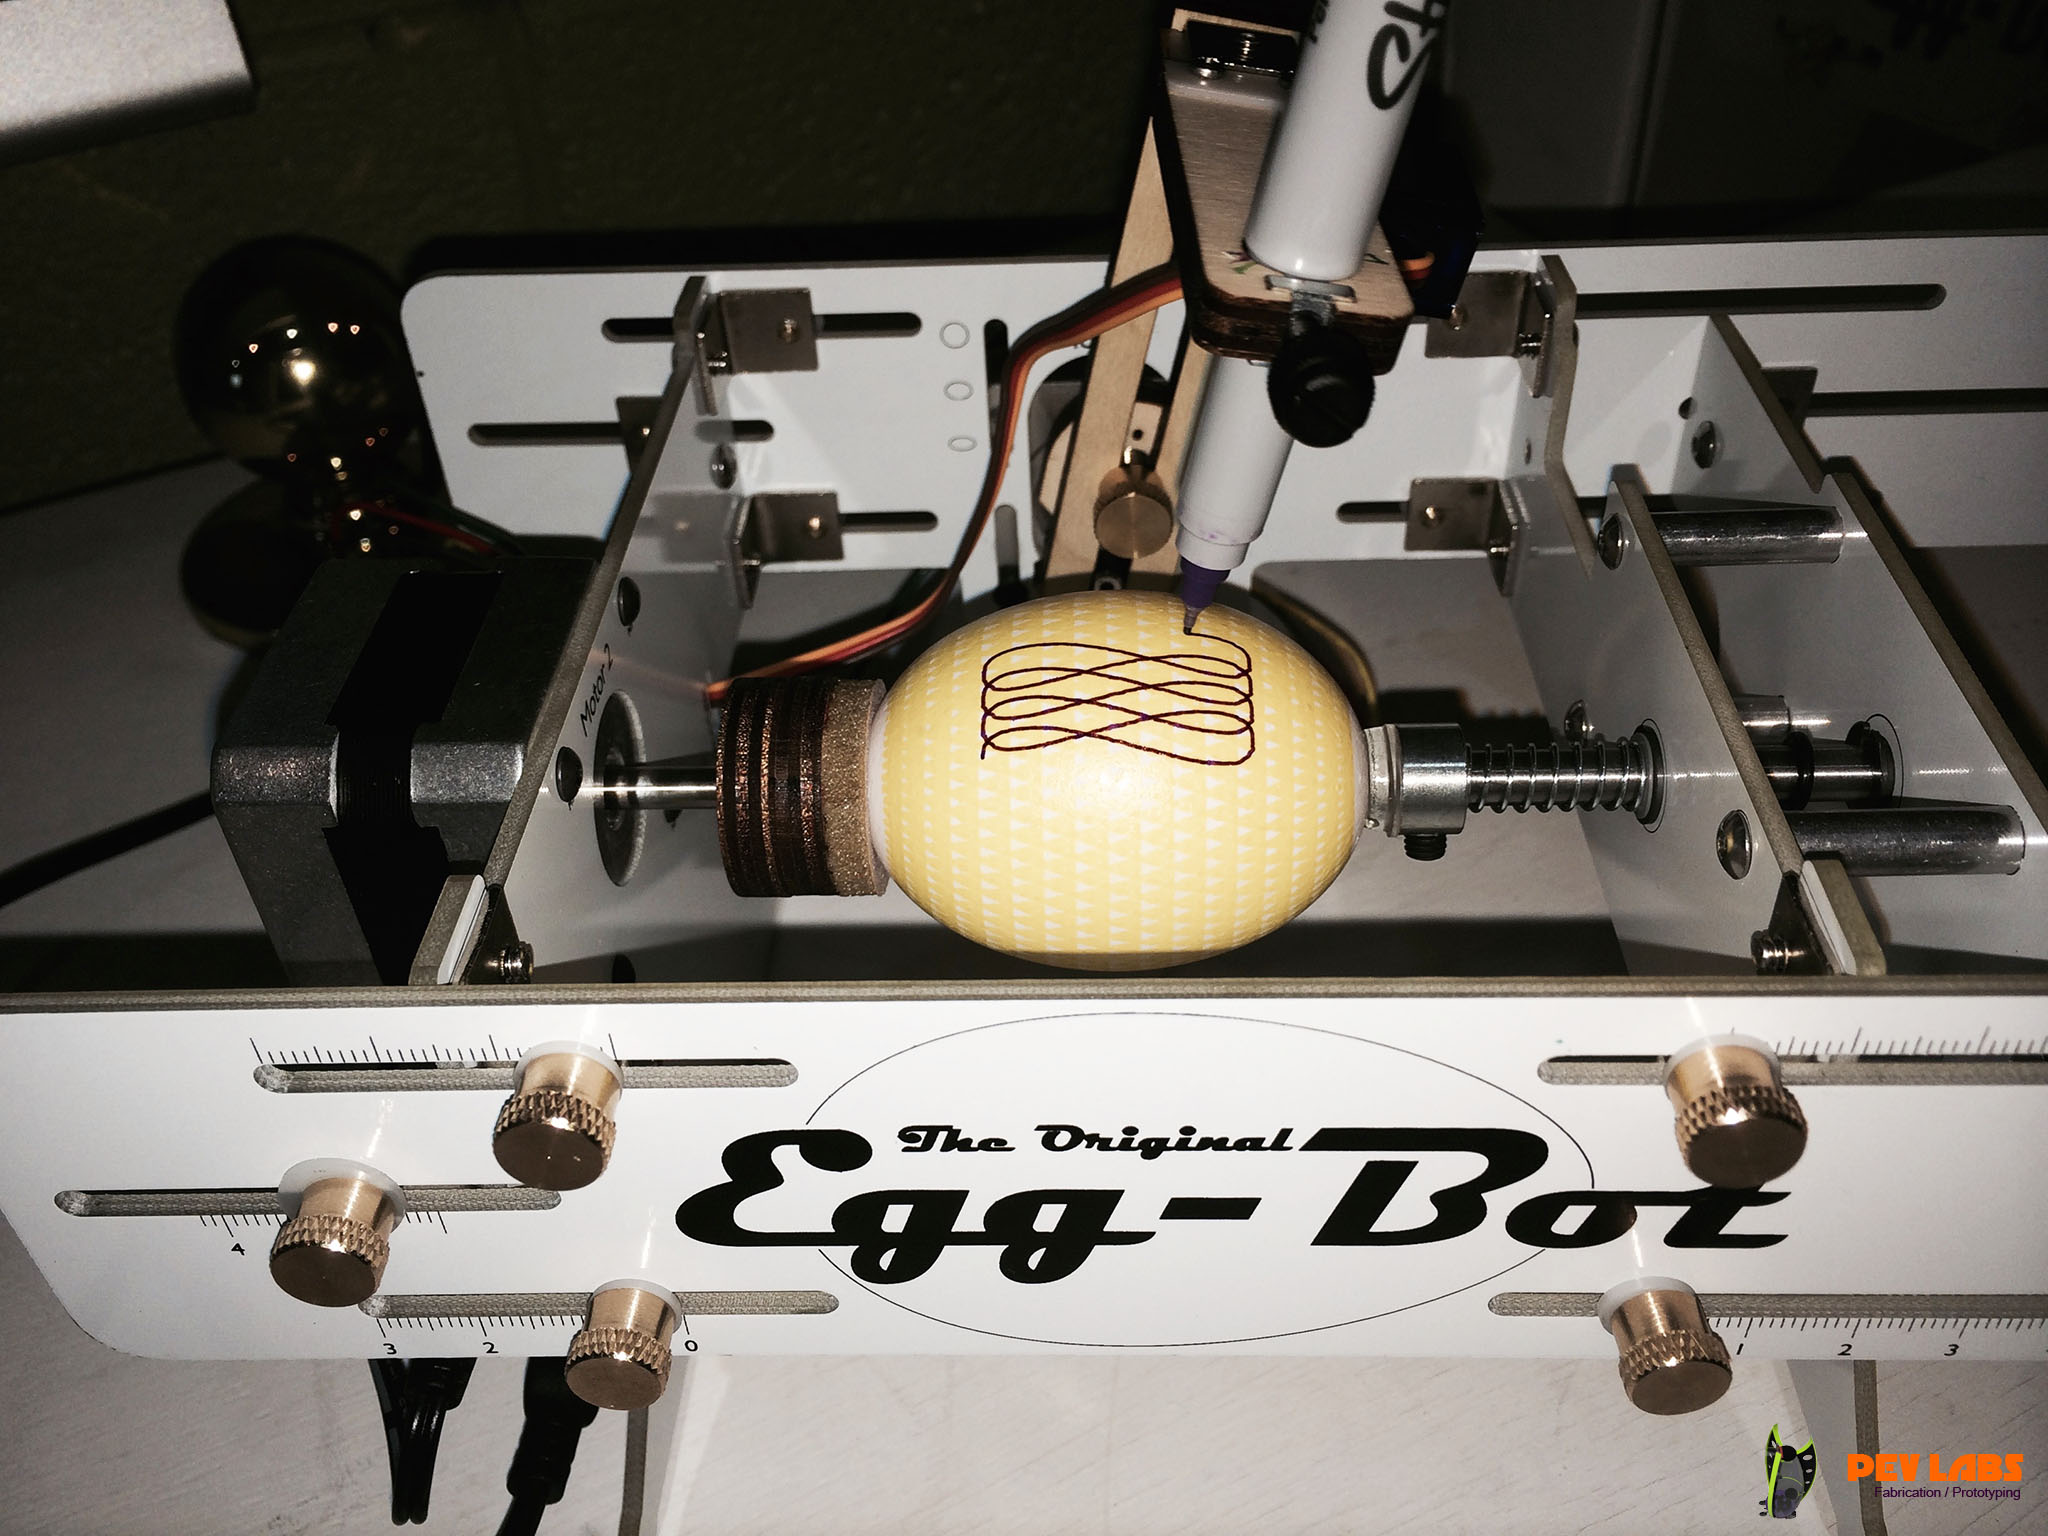 Drawing Double Pattern on Egg